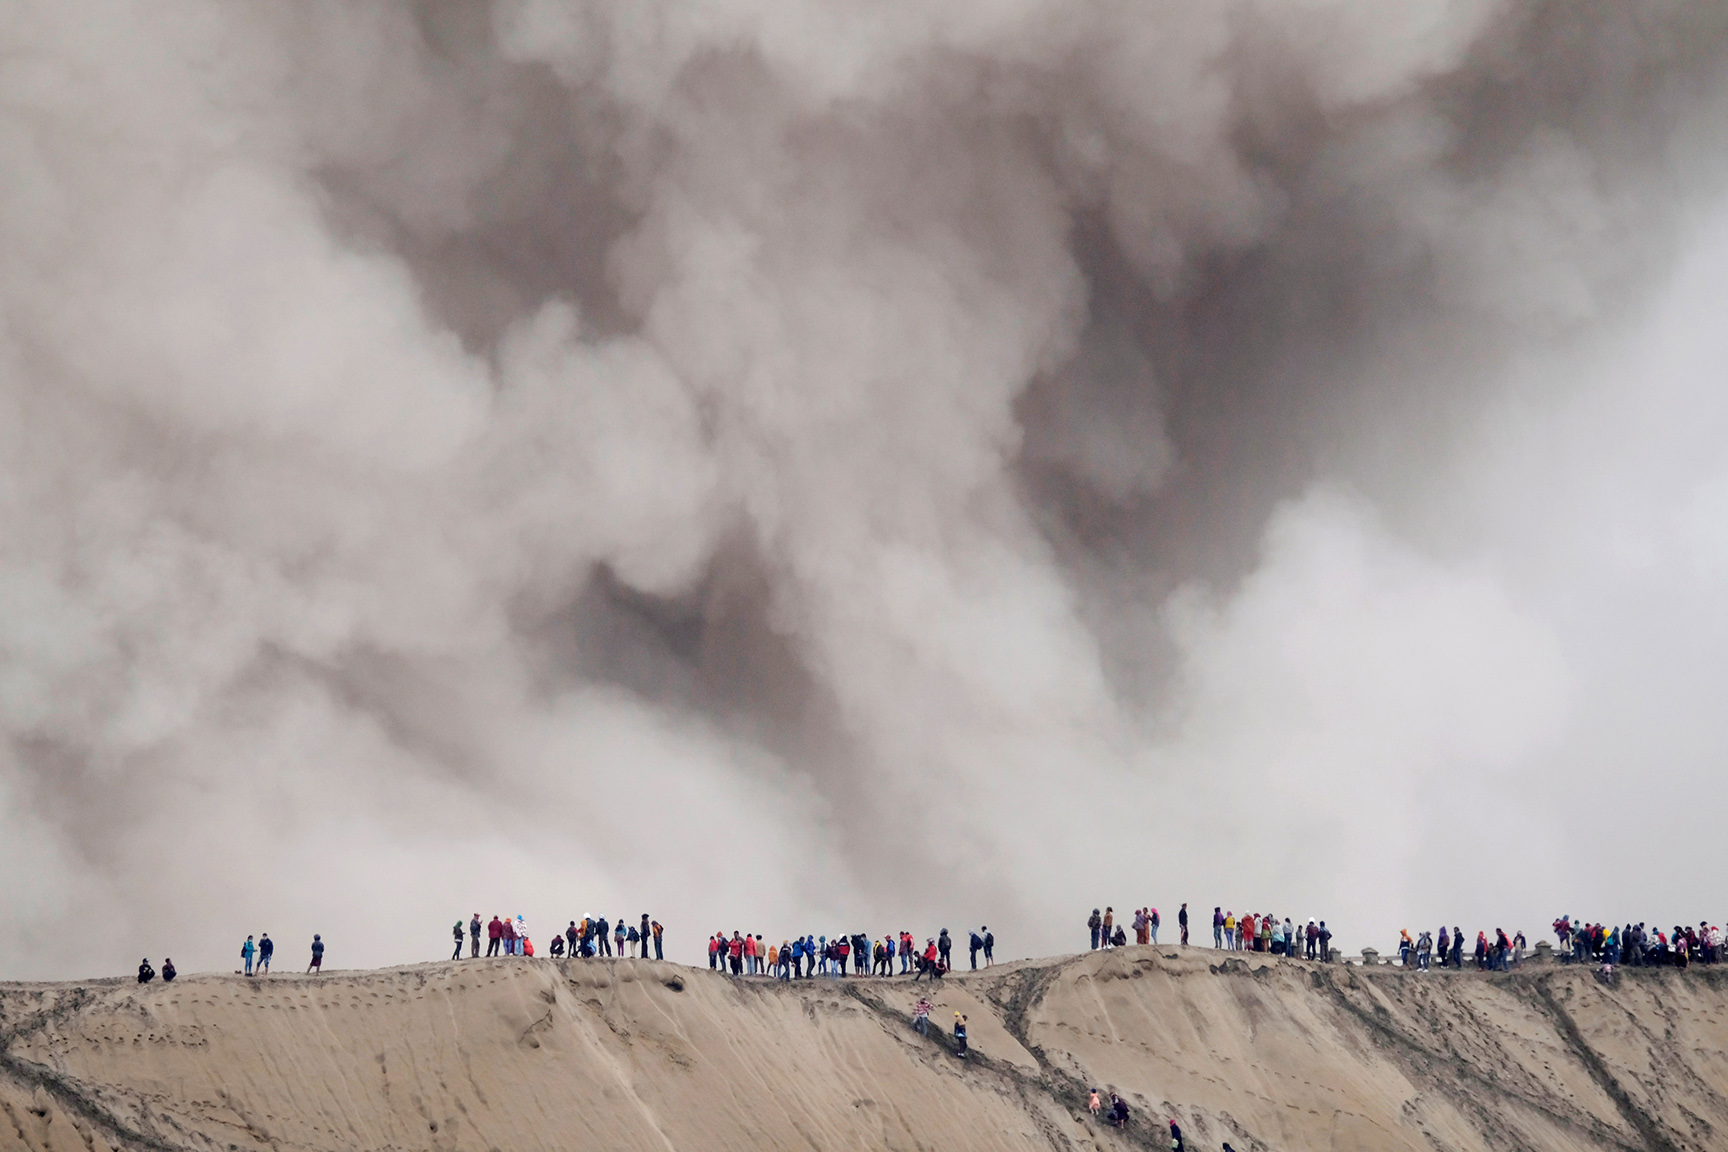 Mount Bromo spews ash as Hindu villagers and visitors stand on the edge of the volcanic crater ahead of Kasada ceremony in Probolinggo